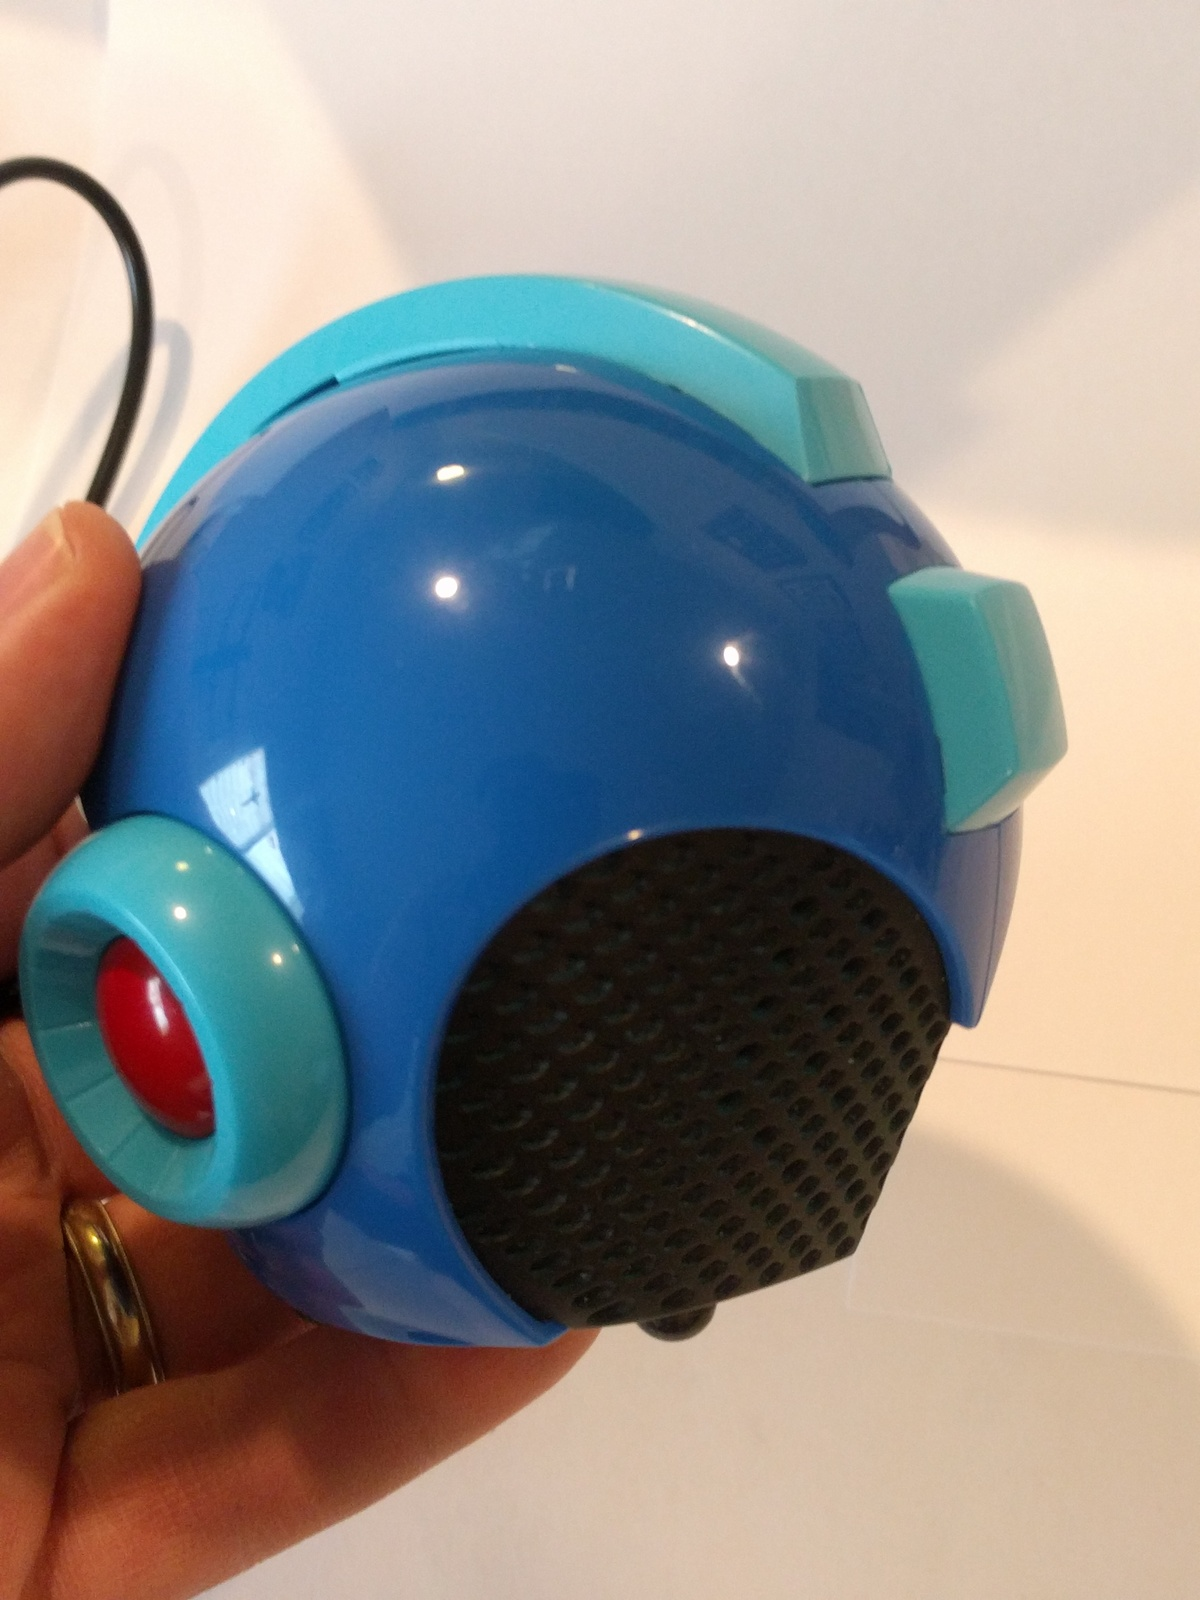 MegaMan Helmet gaming system w/ Raspberry Pi ZeroW installed.64GB SD and Games